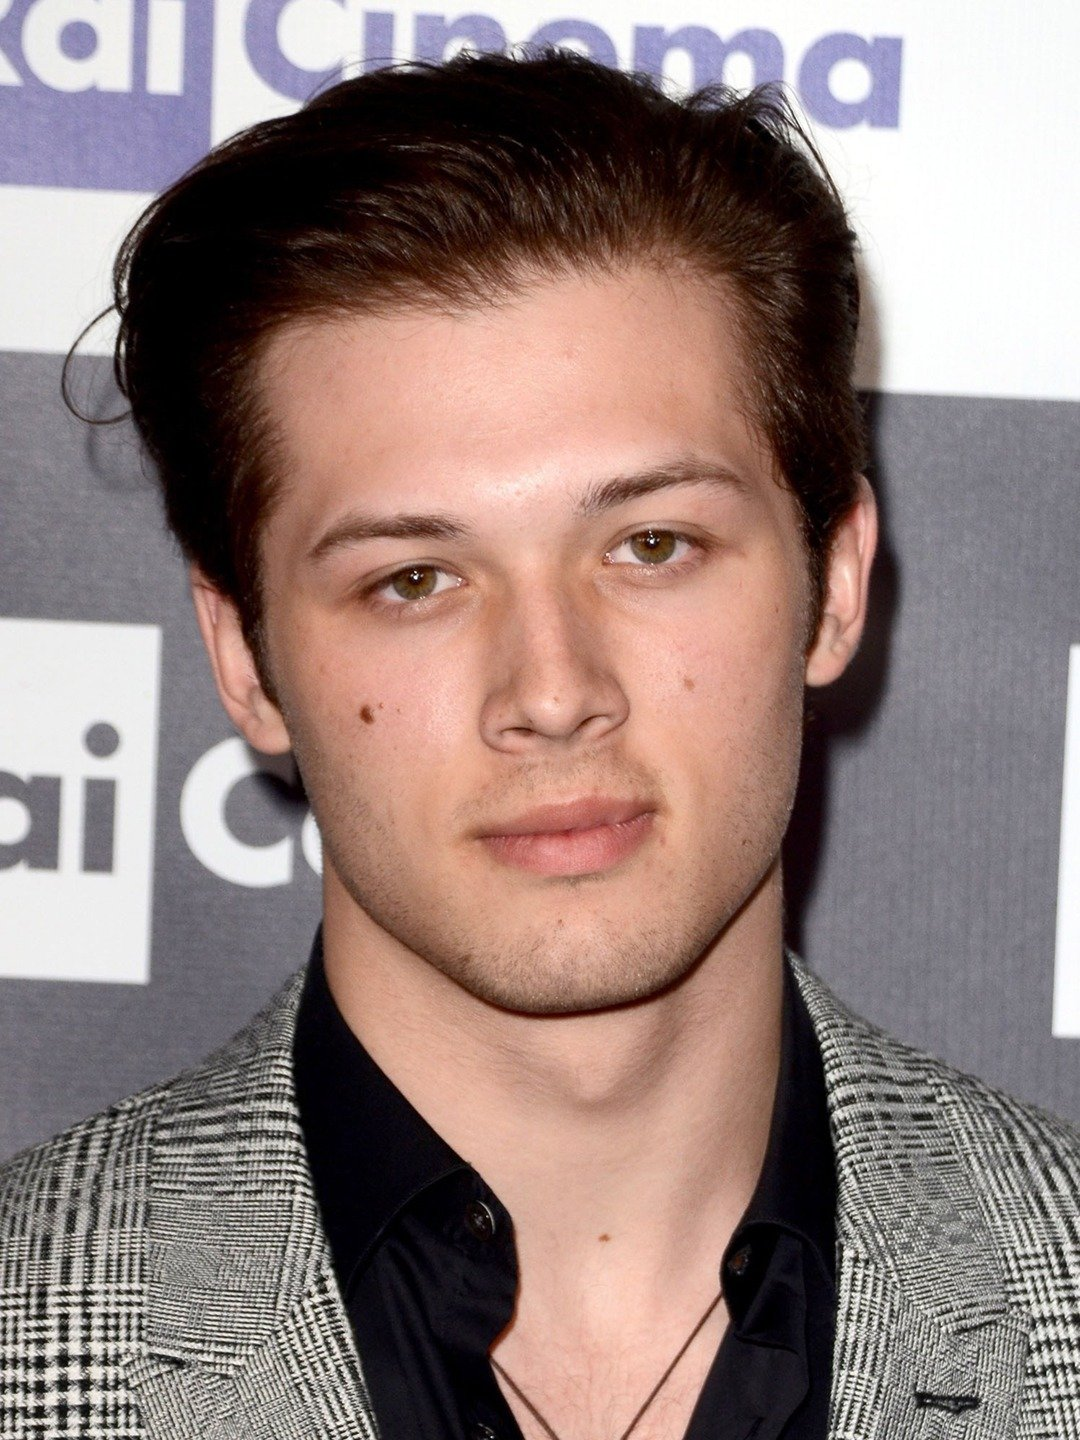 leo howard and liza koshyleo howard instagram, leo howard 2016, leo howard height, leo howard karate, leo howard and liza koshy, leo howard muscle, leo howard movies, leo howard new show, leo howard 2012, leo howard and olivia holt, leo howard 2017, leo howard twitter, leo howard facebook, leo howard daughter, leo howard life, leo howard wikipedia, leo howard singing, leo howard in shake it up, leo howard fan, leo howard filmography